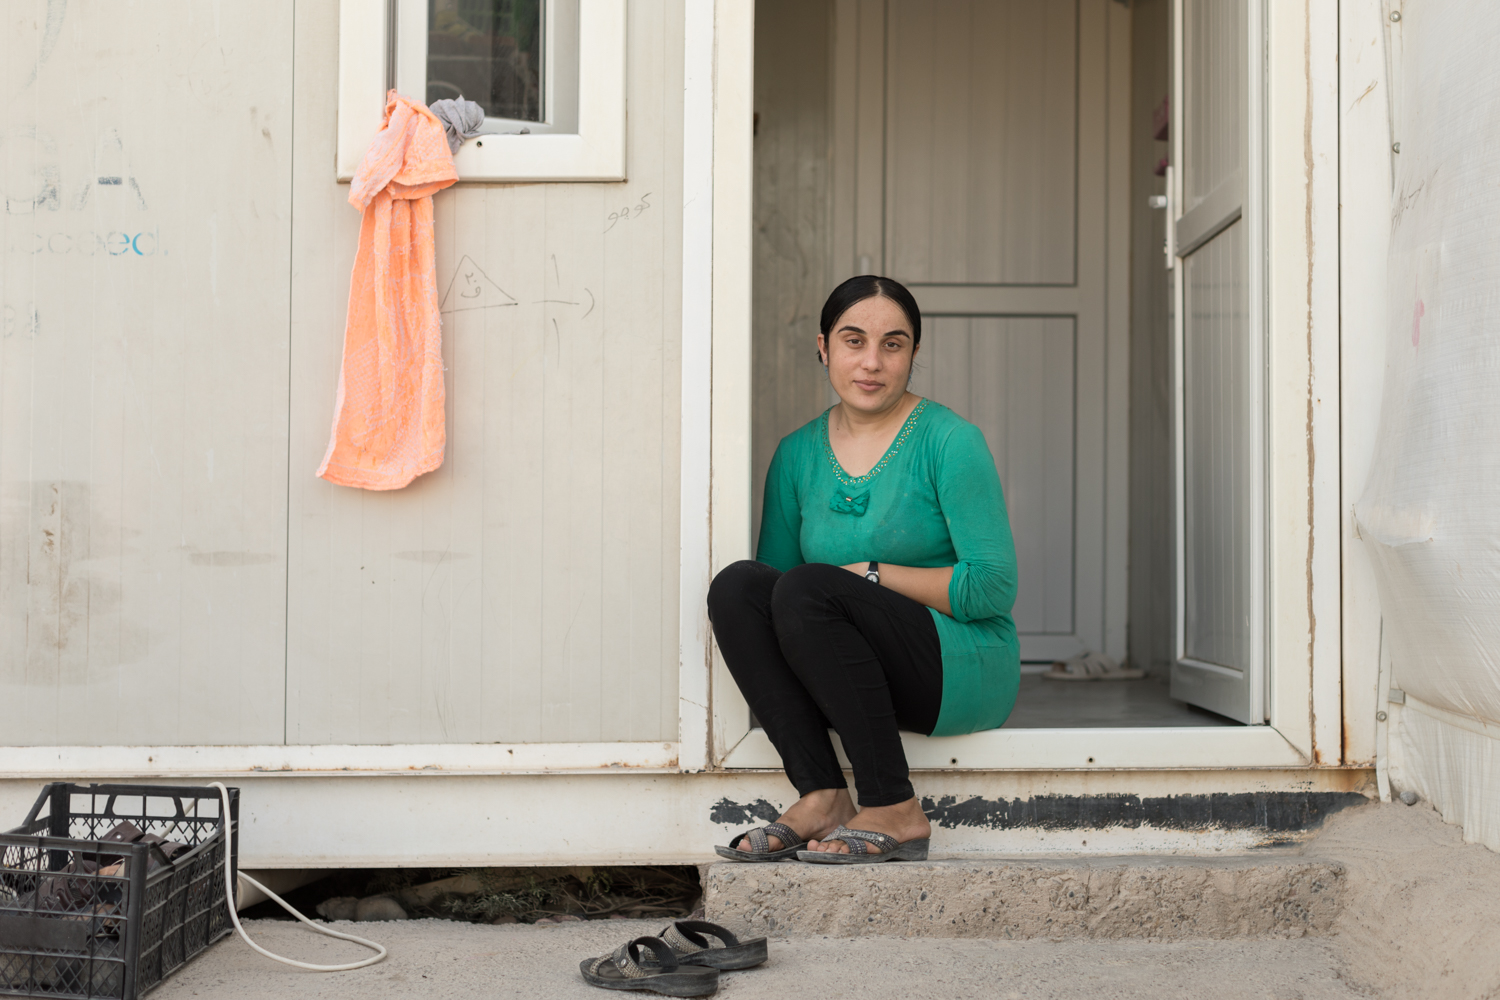 Nofa, a 24-year-old Yazidi woman who survived weeks living as an ISIS sex slave, sits outside her shelter at the 19,000 member Rwanga Community Camp in Qadiya, Iraq. hot for Grazia Magazine UK (August 2017).